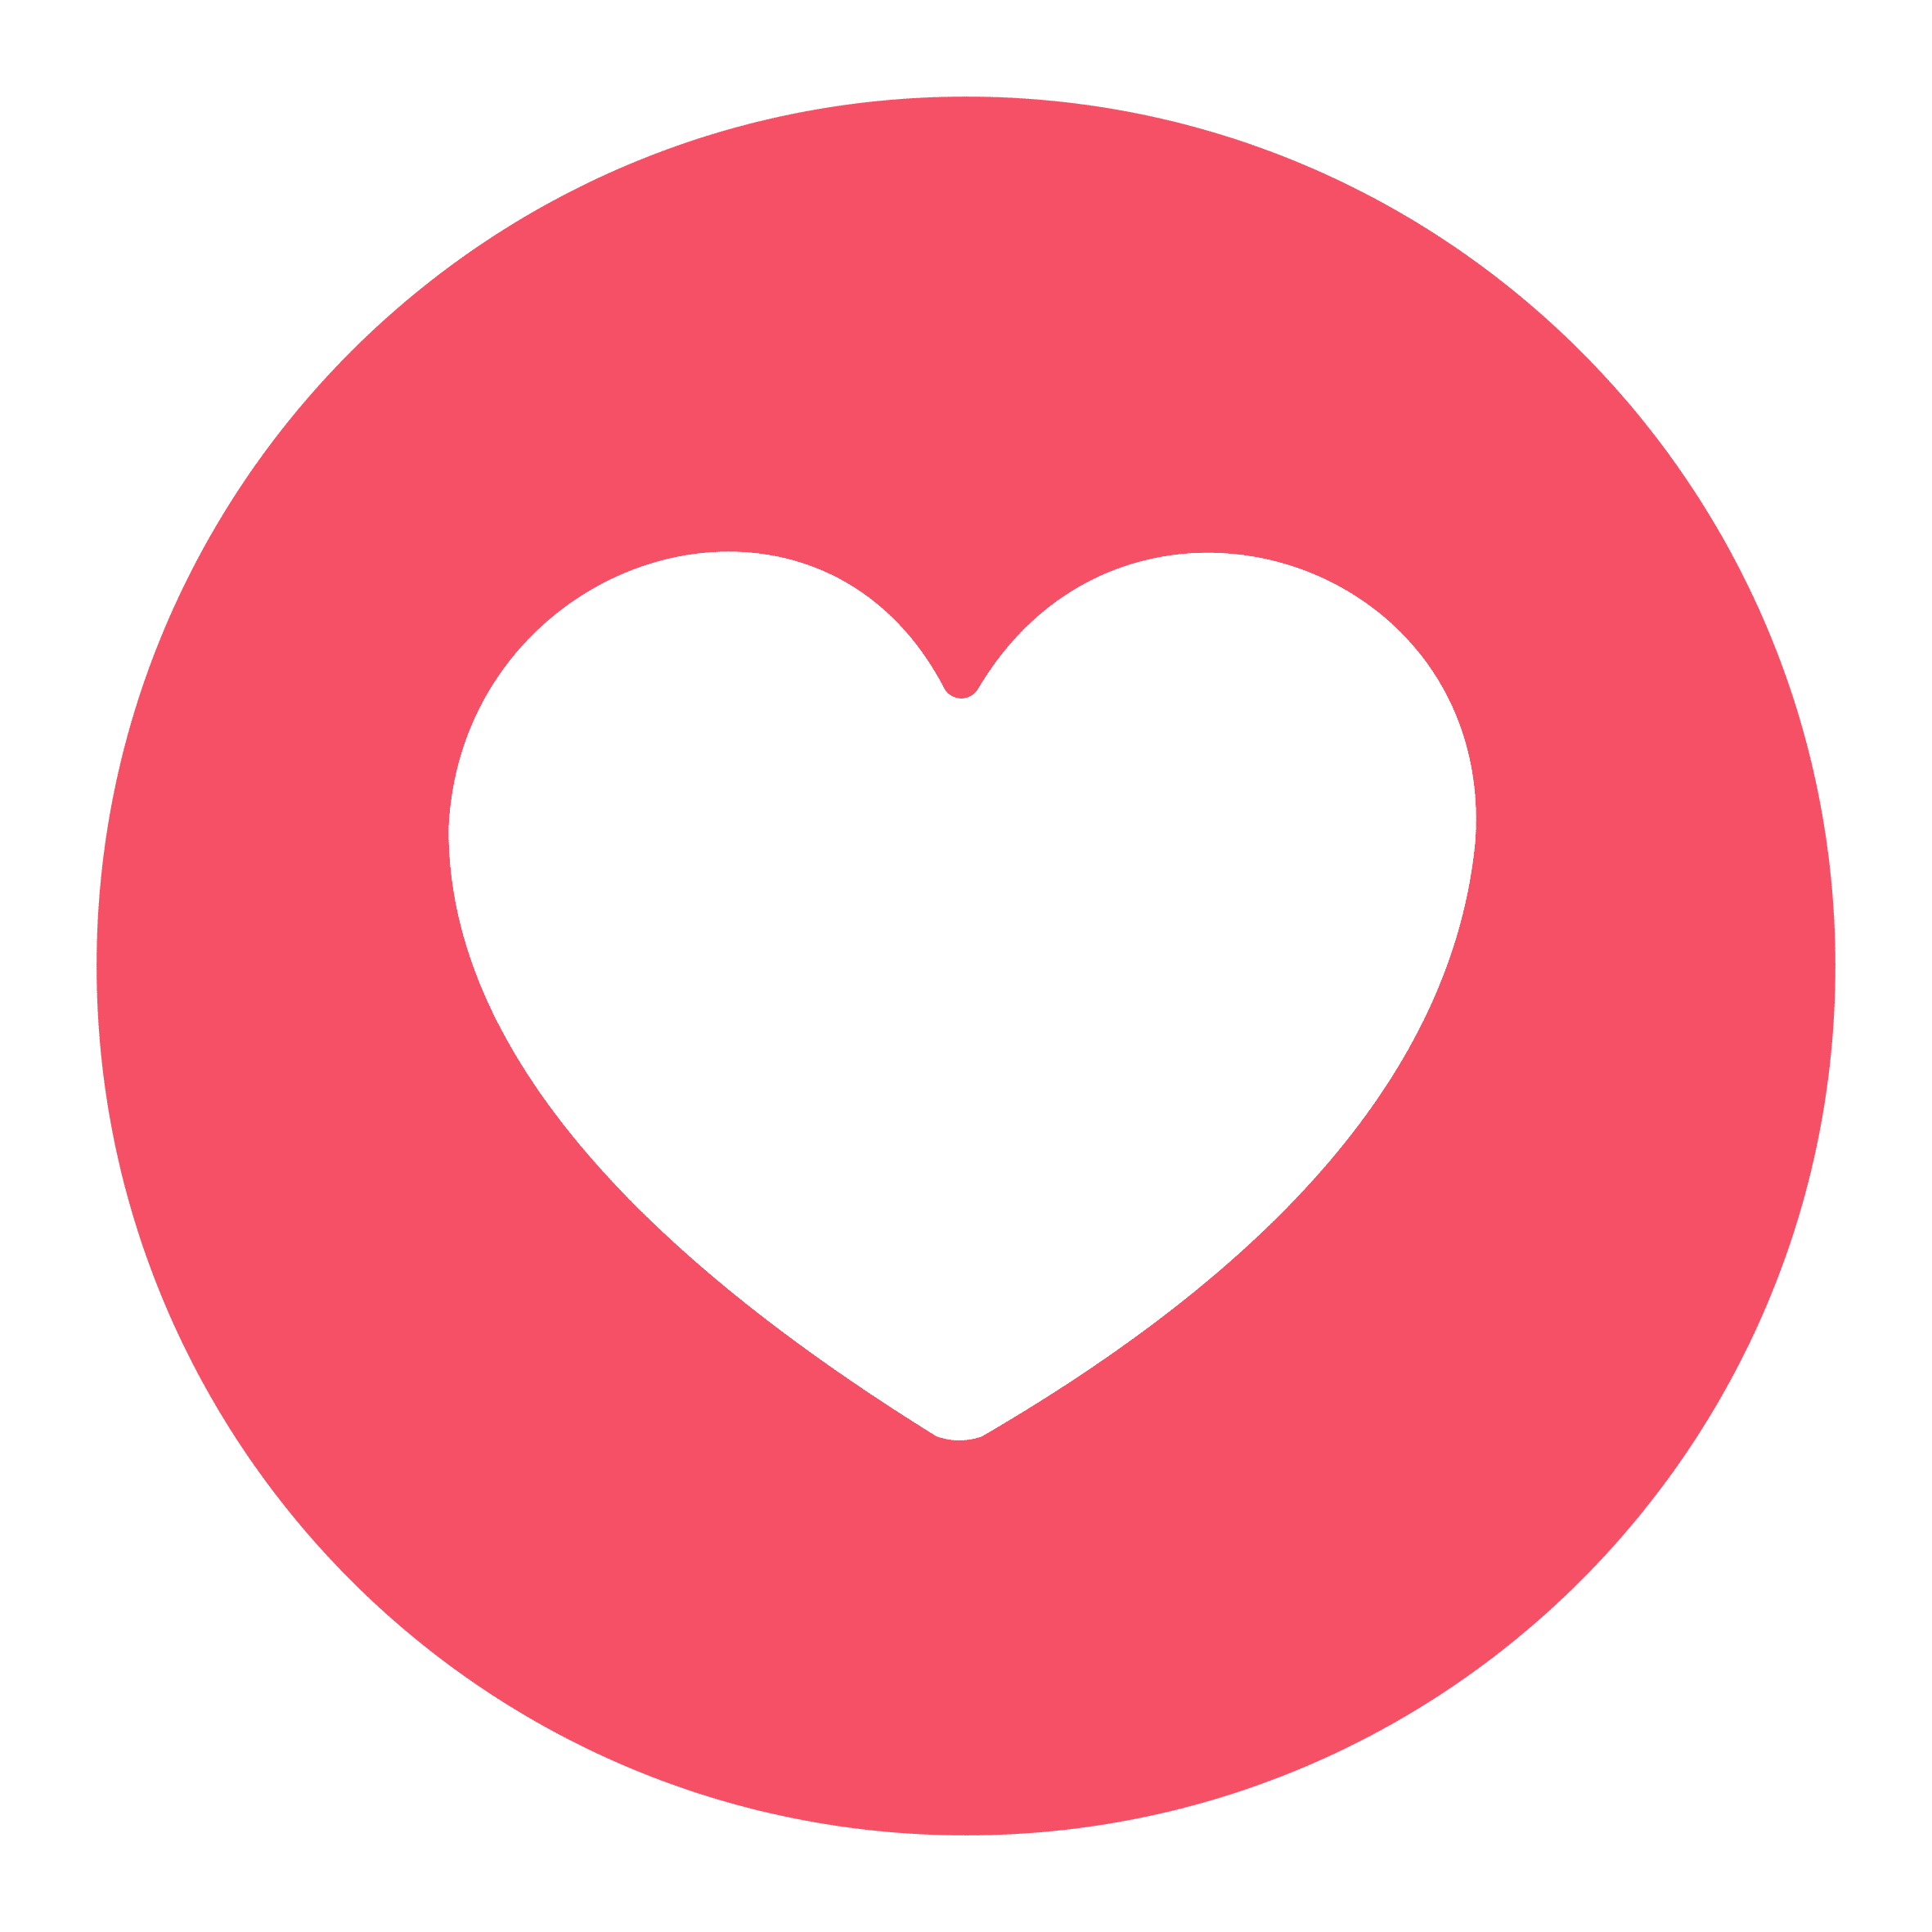 Facebook circle heart love png thecheapjerseys Image collections